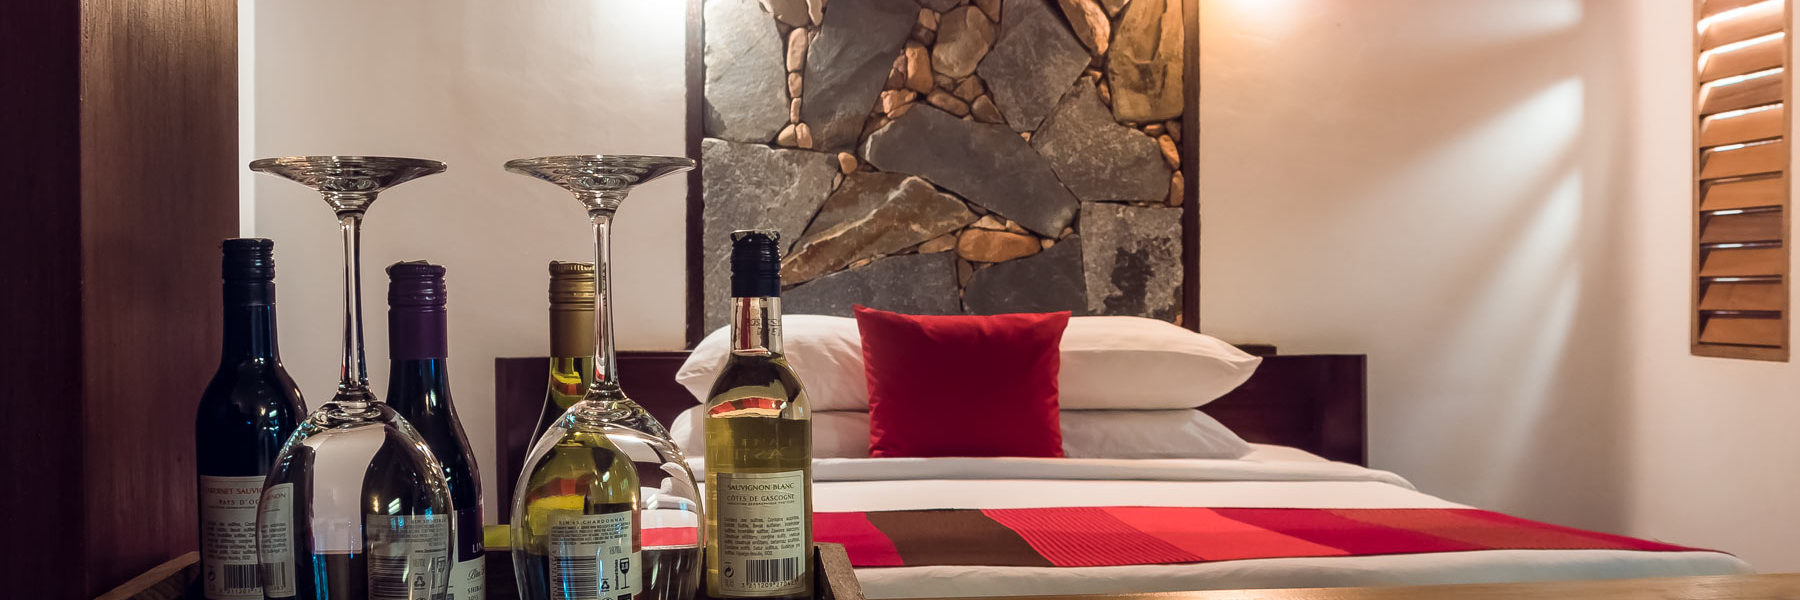 High standing single bedroom with natural stones design and wine degustation at the guest disposal in Veranda Natural Resort, Kep City - Cambodia.